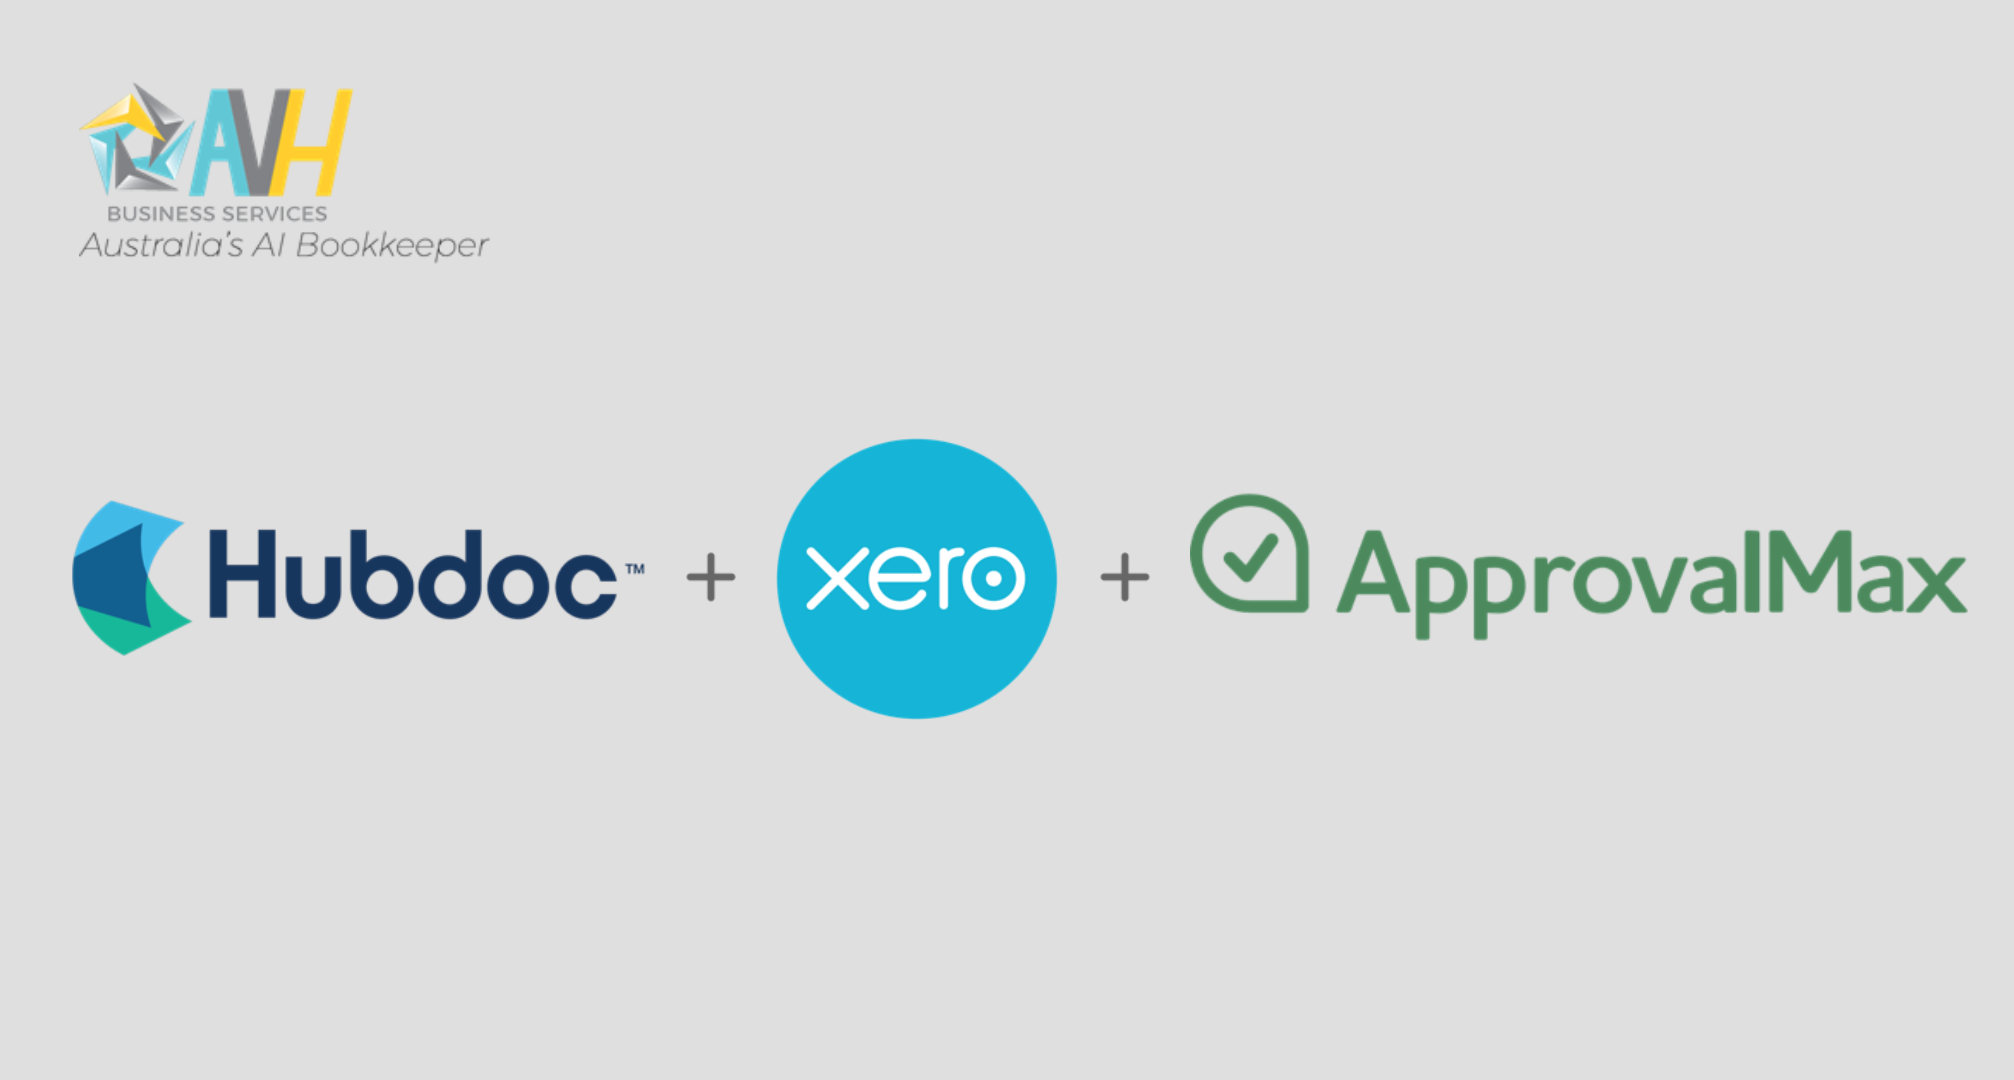 Bill Automation for construction clients using Hubdoc + Xero + ApprovalMax